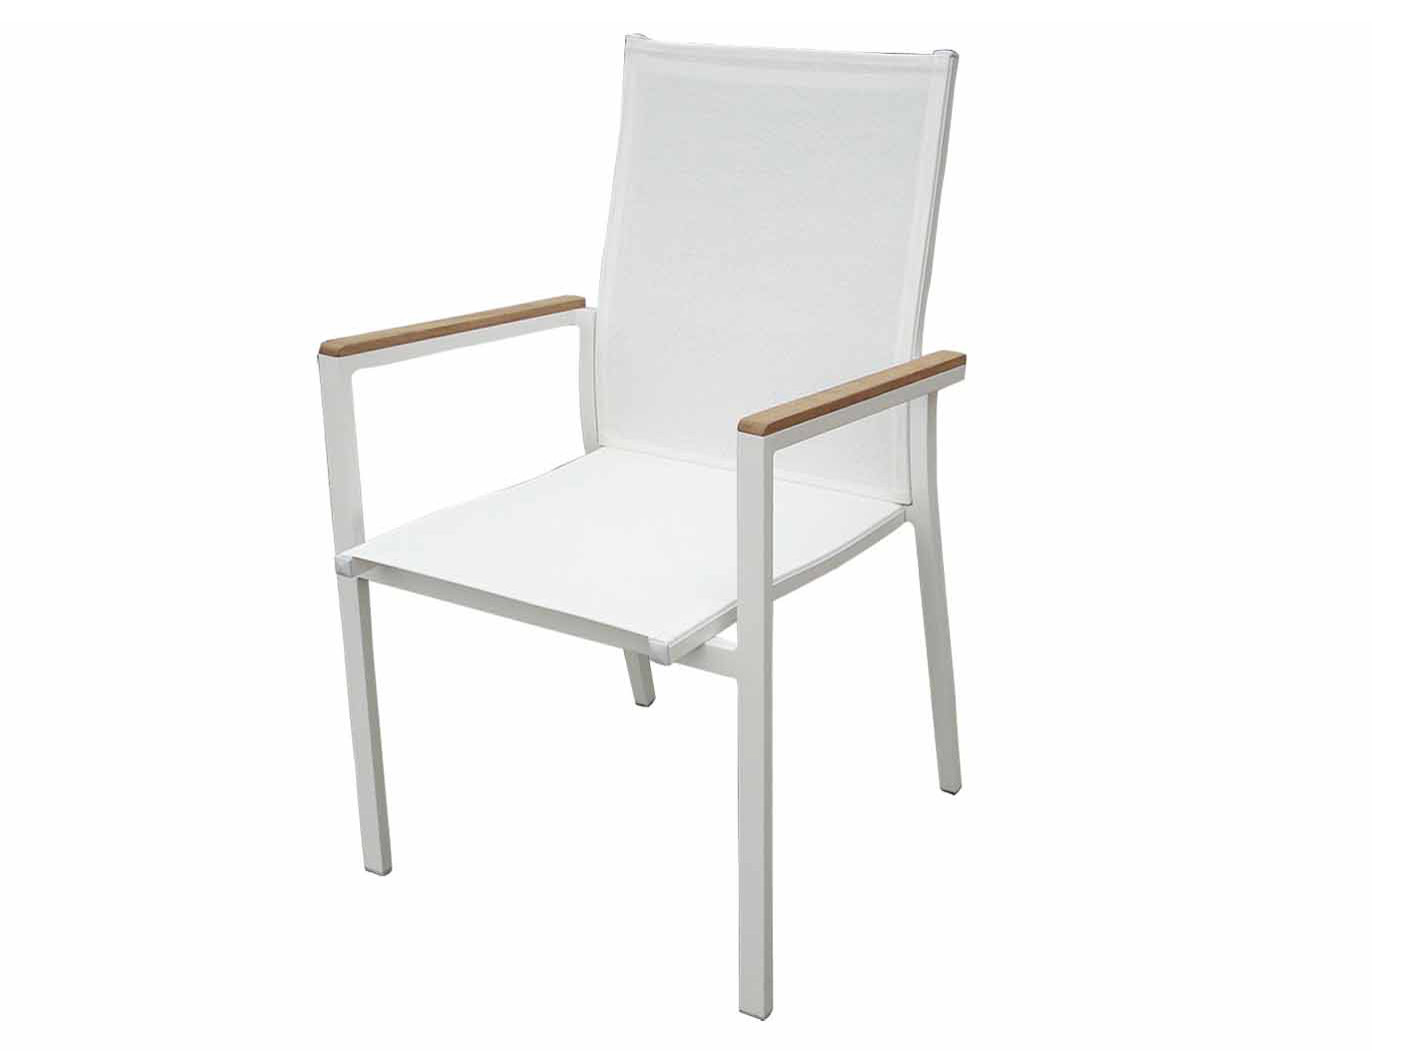 S262 Outdoor dining chair